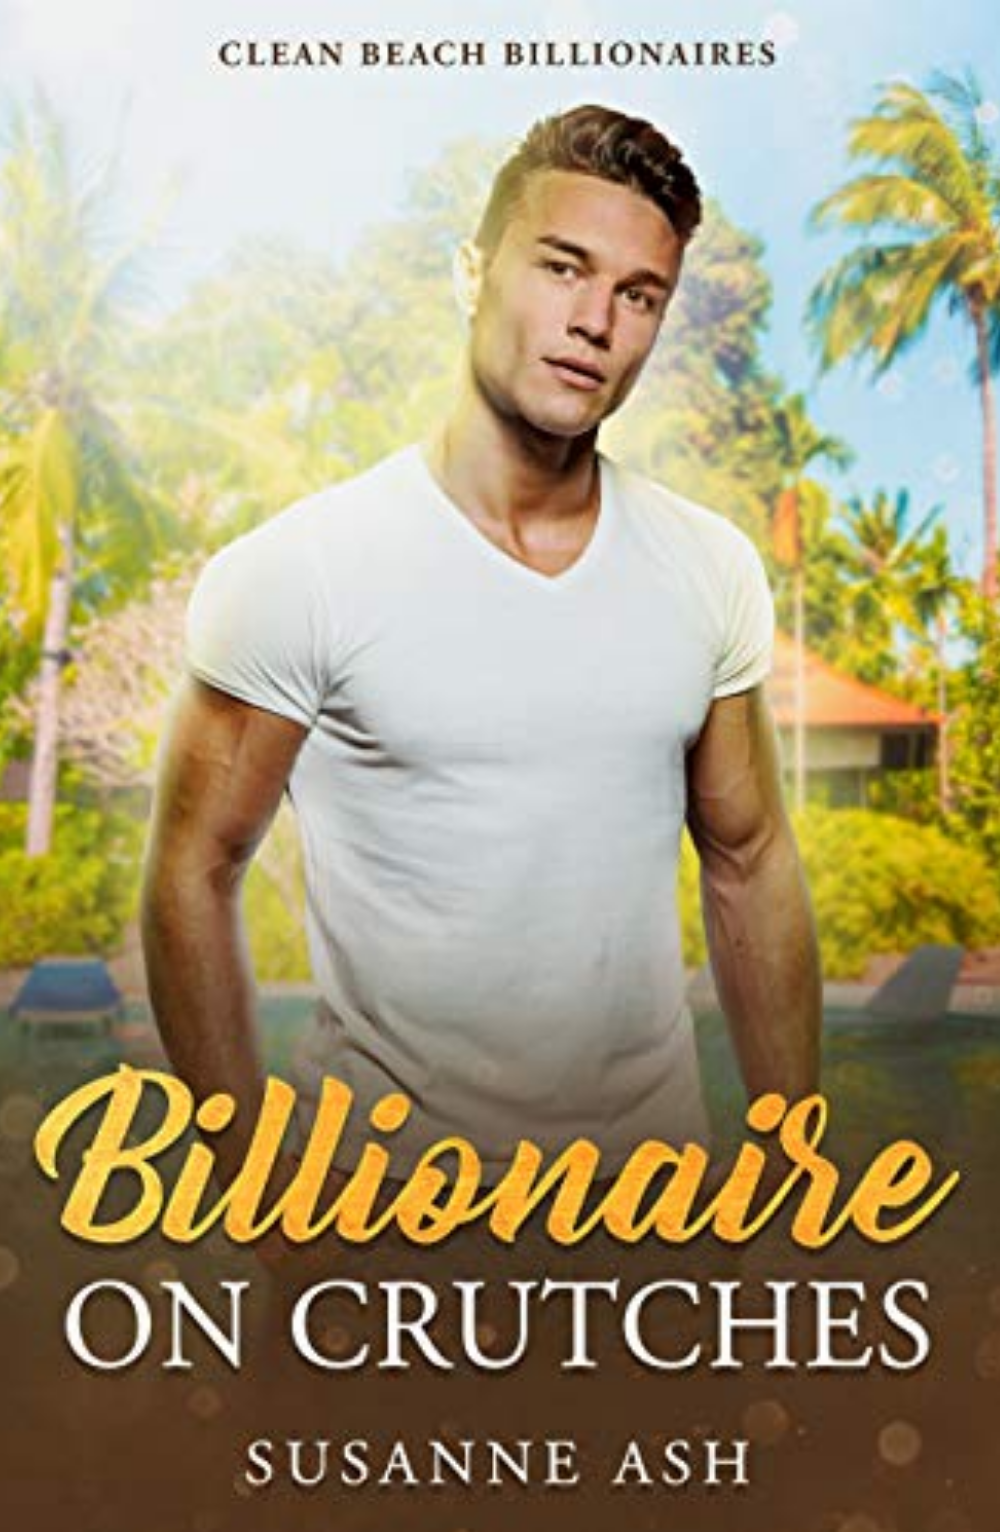 Recommended Books To Read Billionaire On Crutches By Suzanne Ash Recommended Books To Read Books To Read Beach Reading